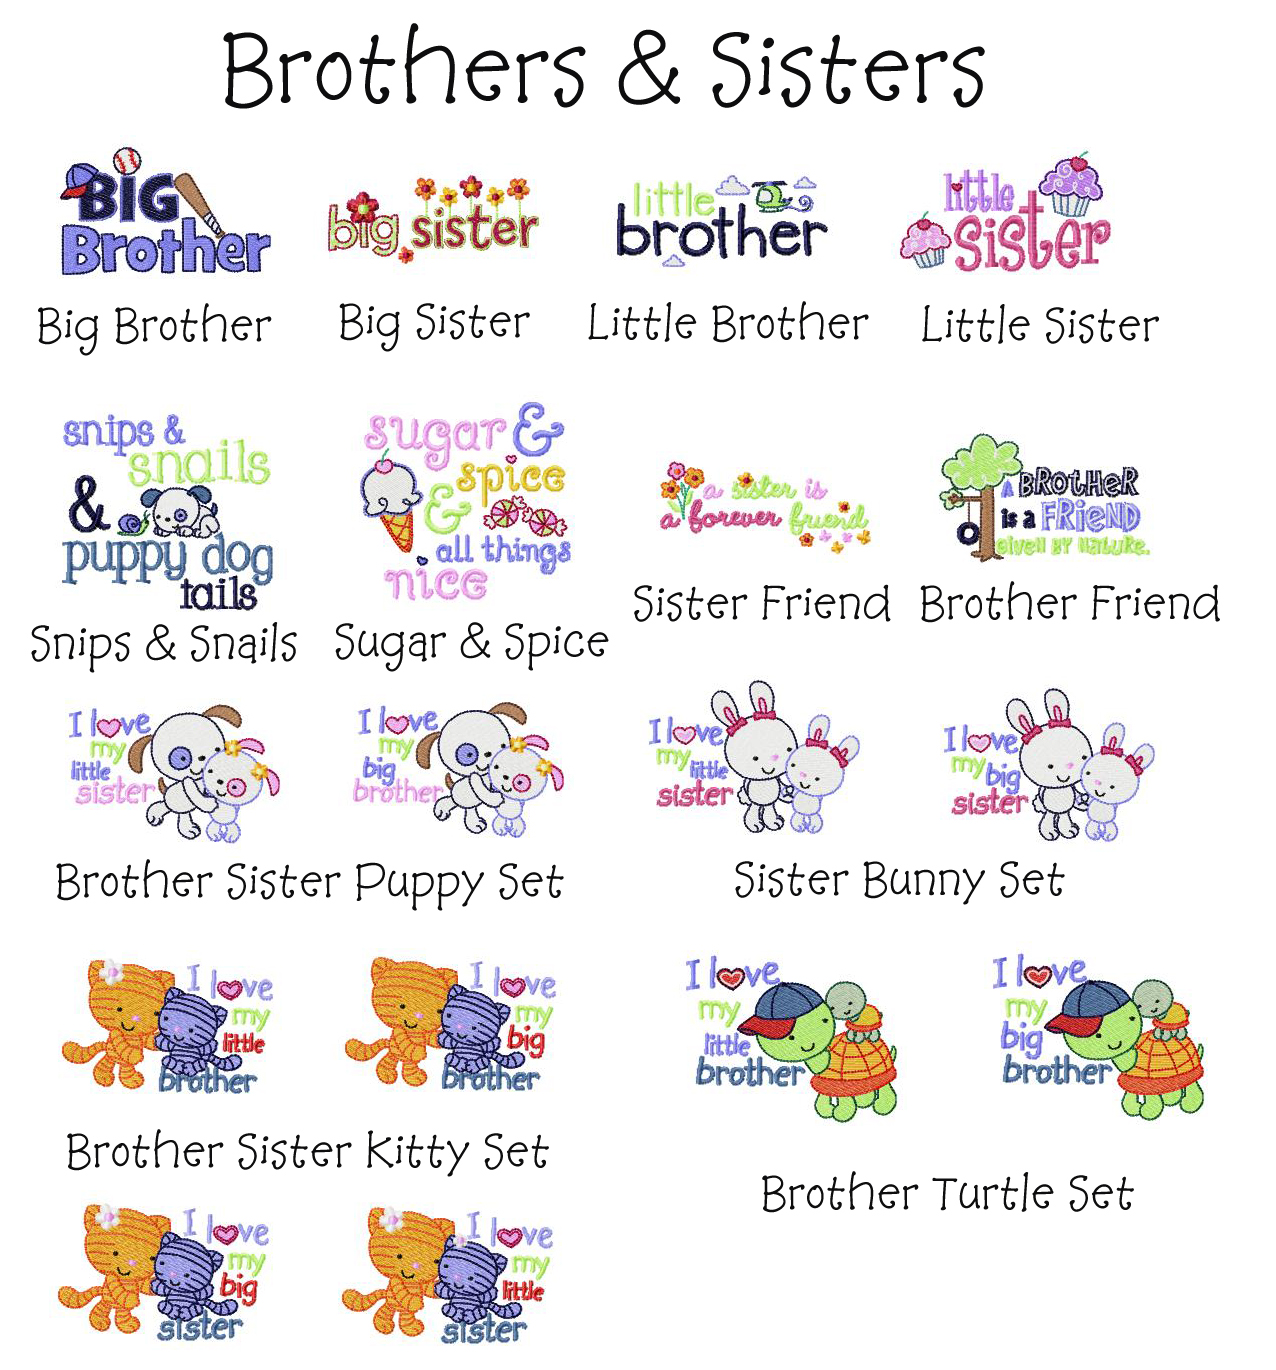 Love my brother and sister quotes-7965